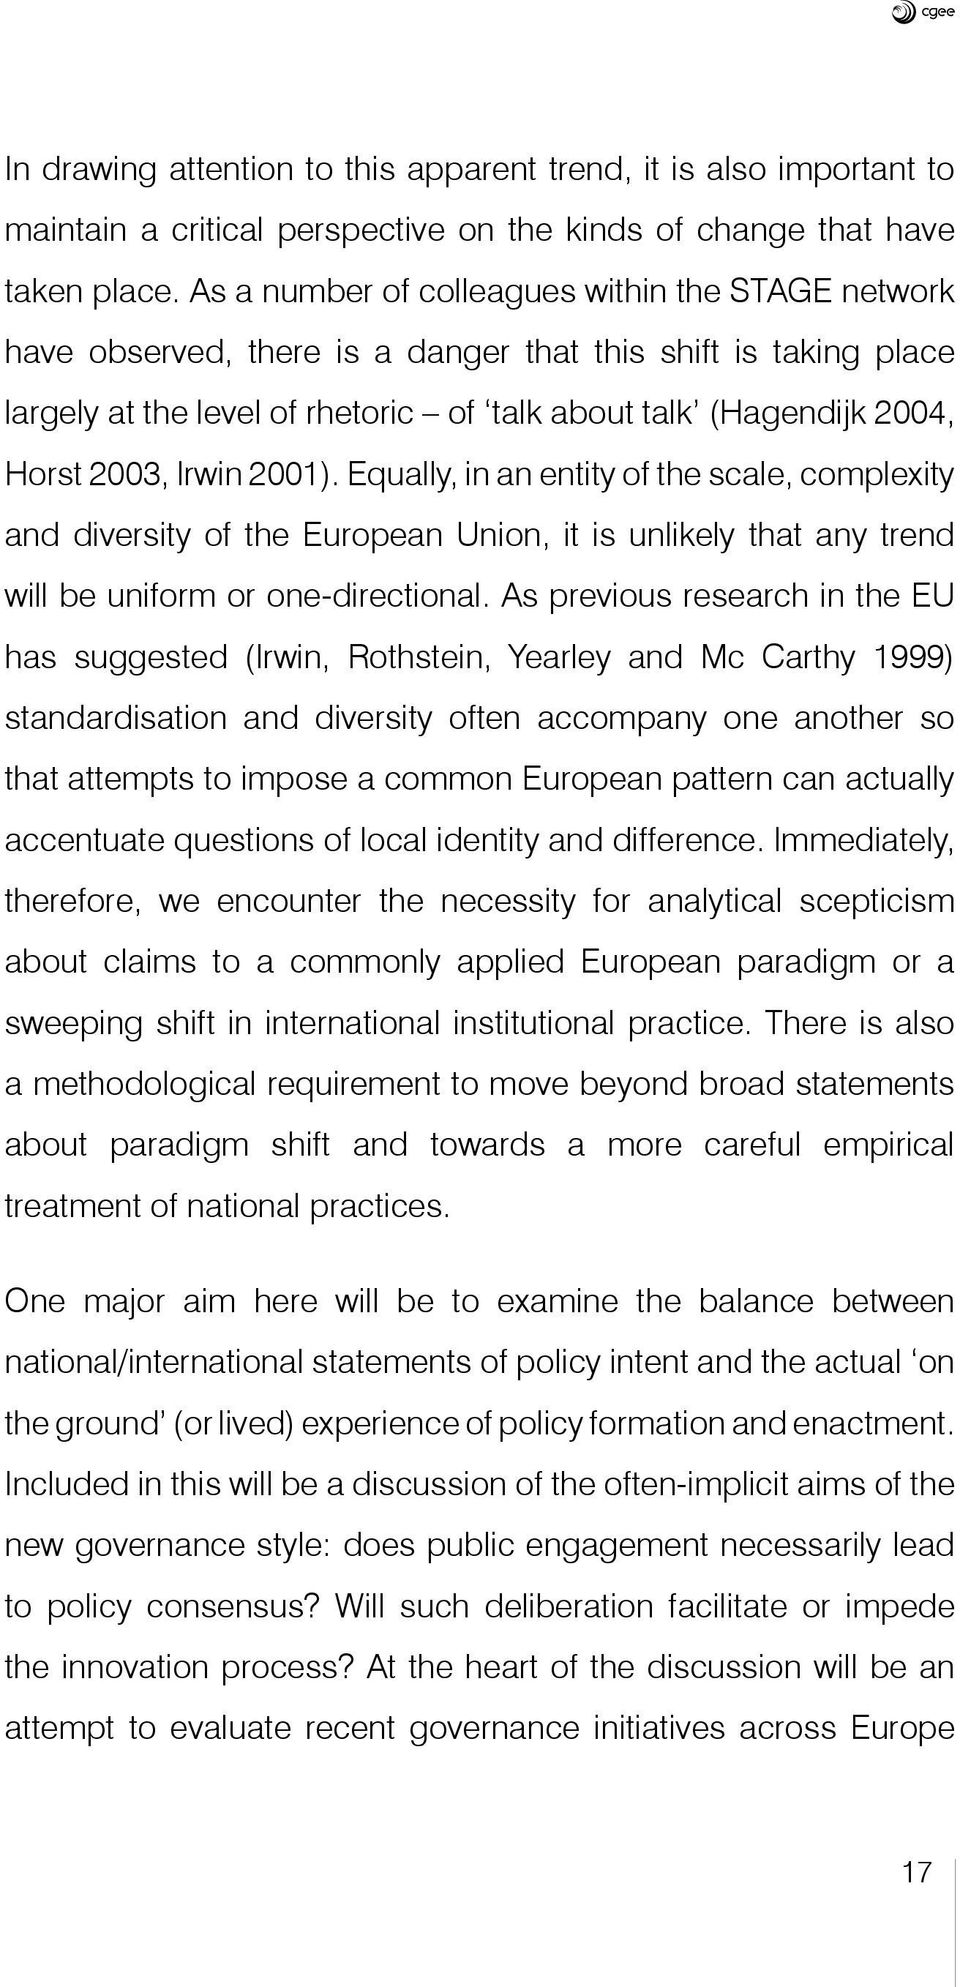 Irwin 2001). Equally, in an entity of the scale, complexity and diversity of the European Union, it is unlikely that any trend will be uniform or one-directional.